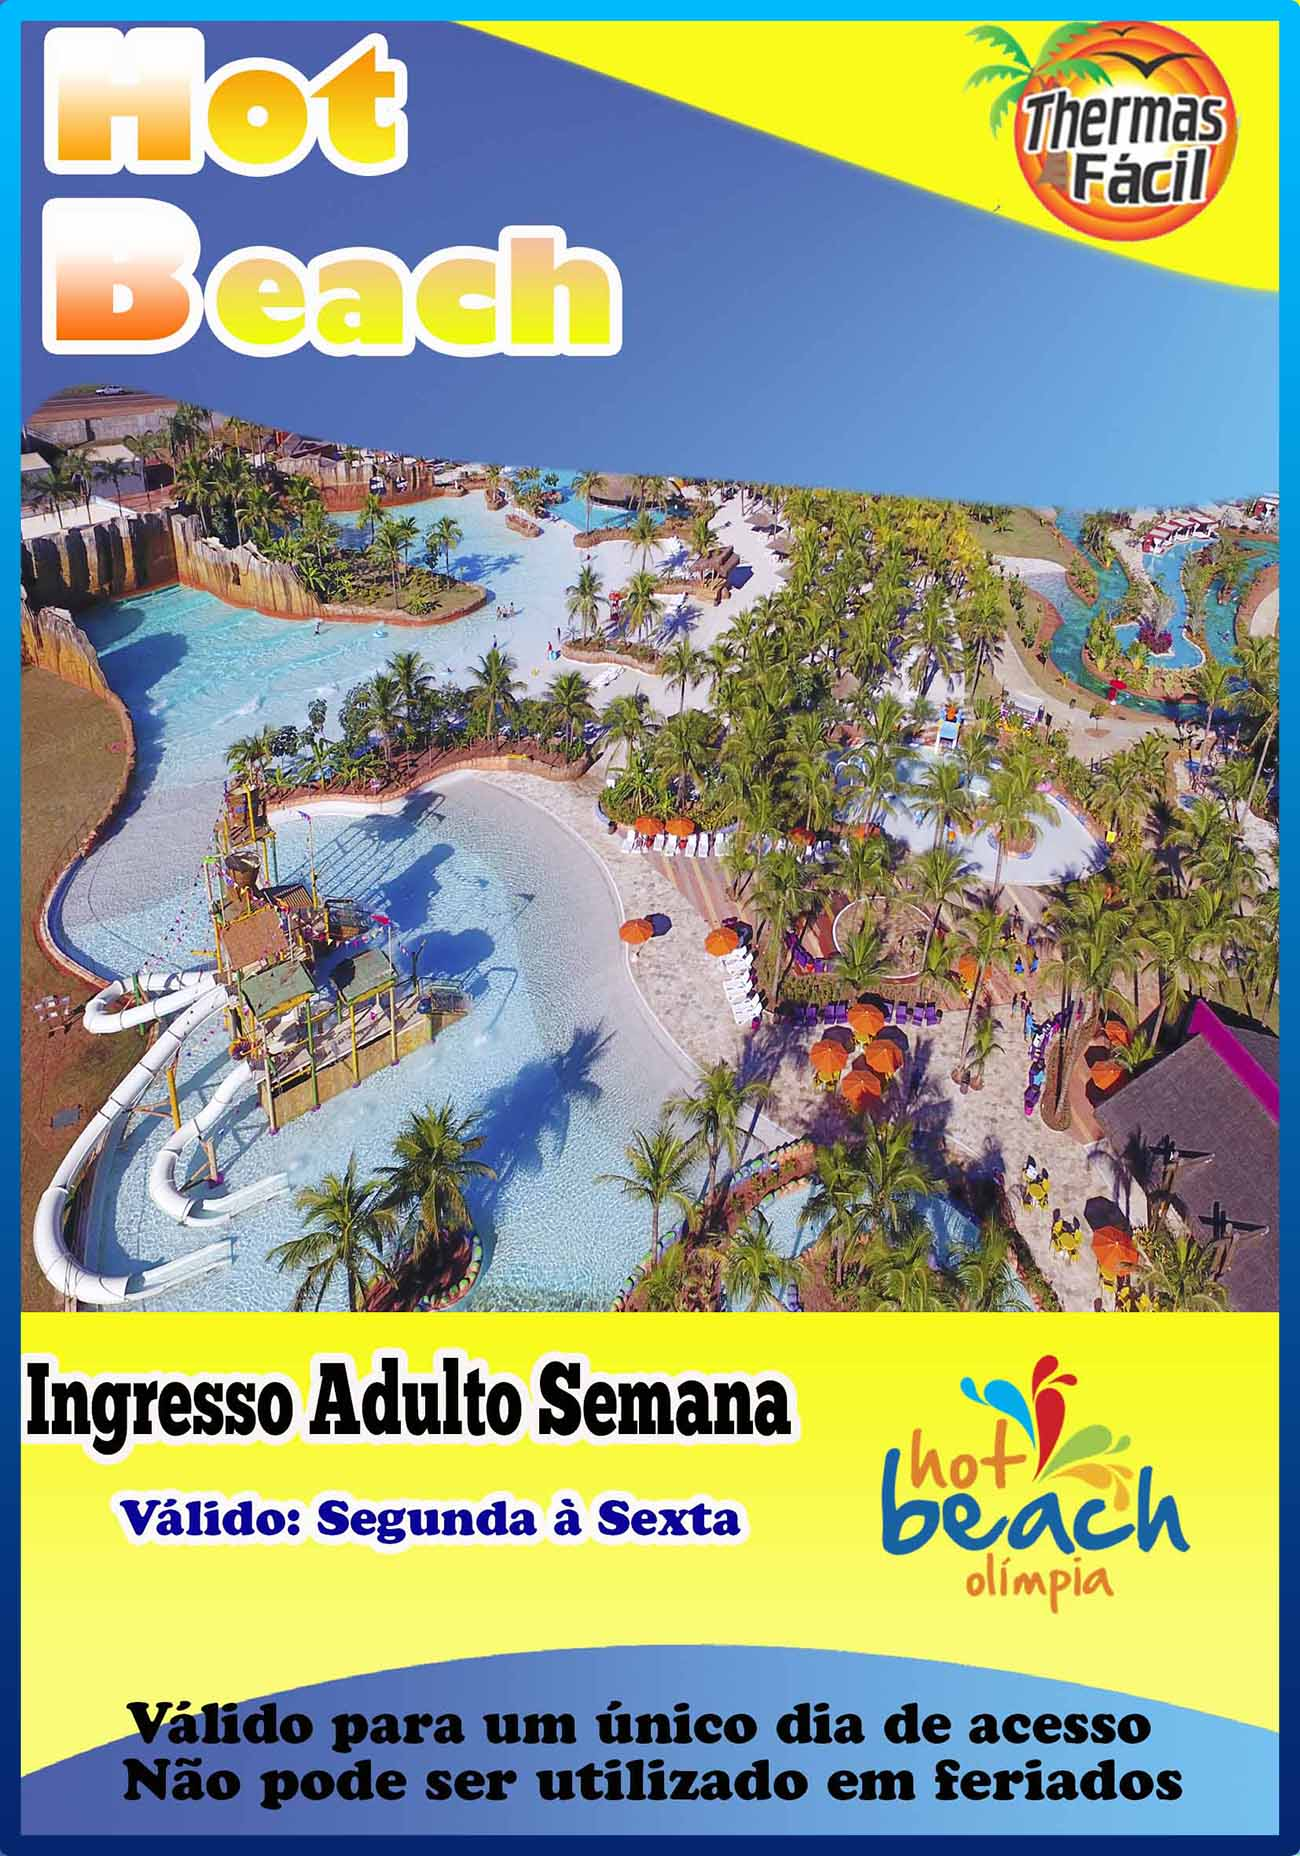 Ingresso Adulto - Semana - Hot Beach  - Thermas Fácil